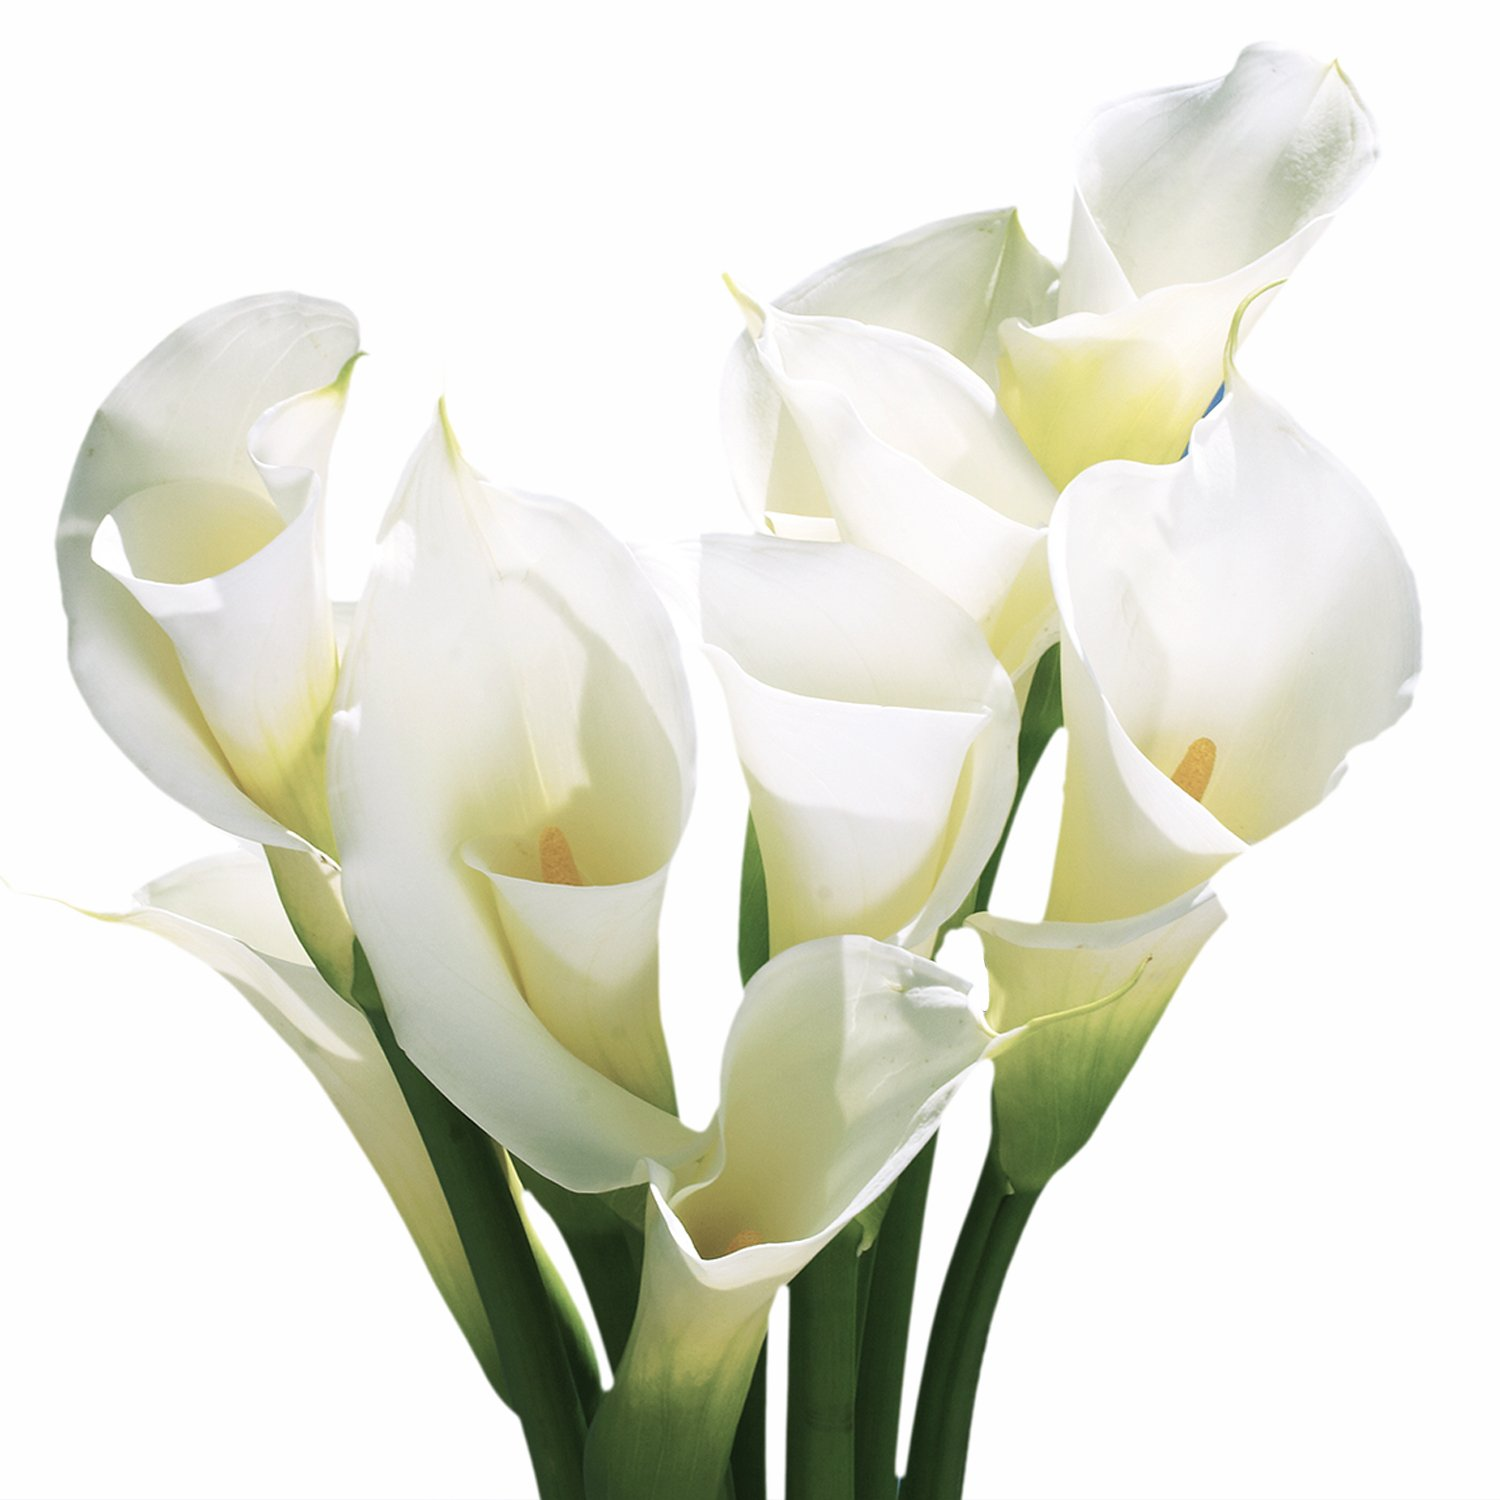 Amazon globalrose 18 fresh open cut white calla lilies fresh amazon globalrose 18 fresh open cut white calla lilies fresh flowers for birthdays weddings or anniversary fresh cut format lily flowers izmirmasajfo